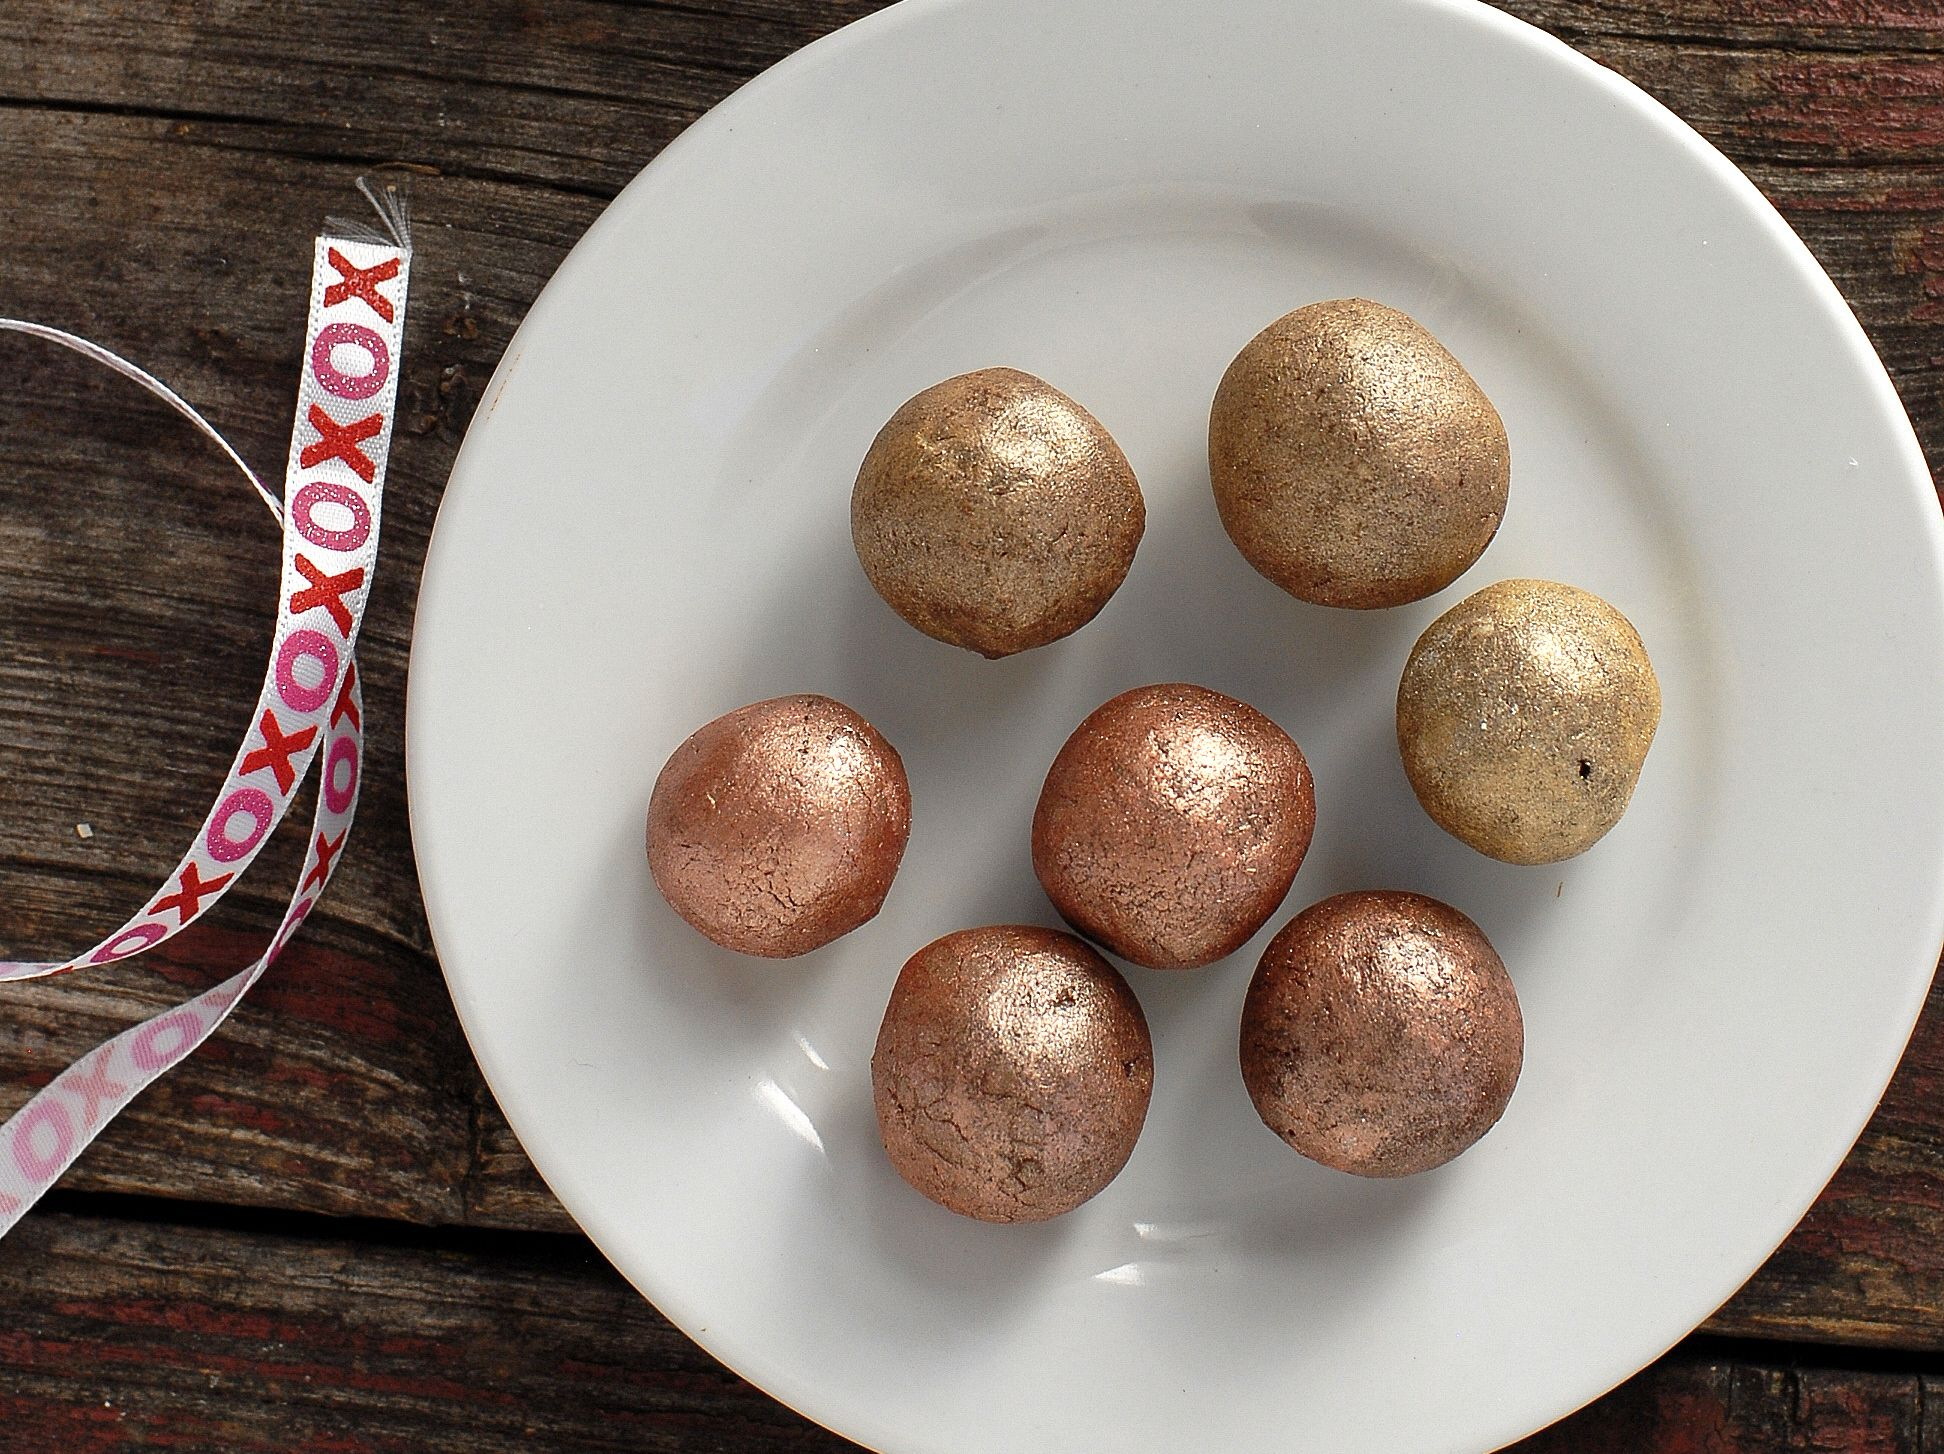 Gojee - Bacon-Chipotle-Espresso Truffles by Boulder Locavore